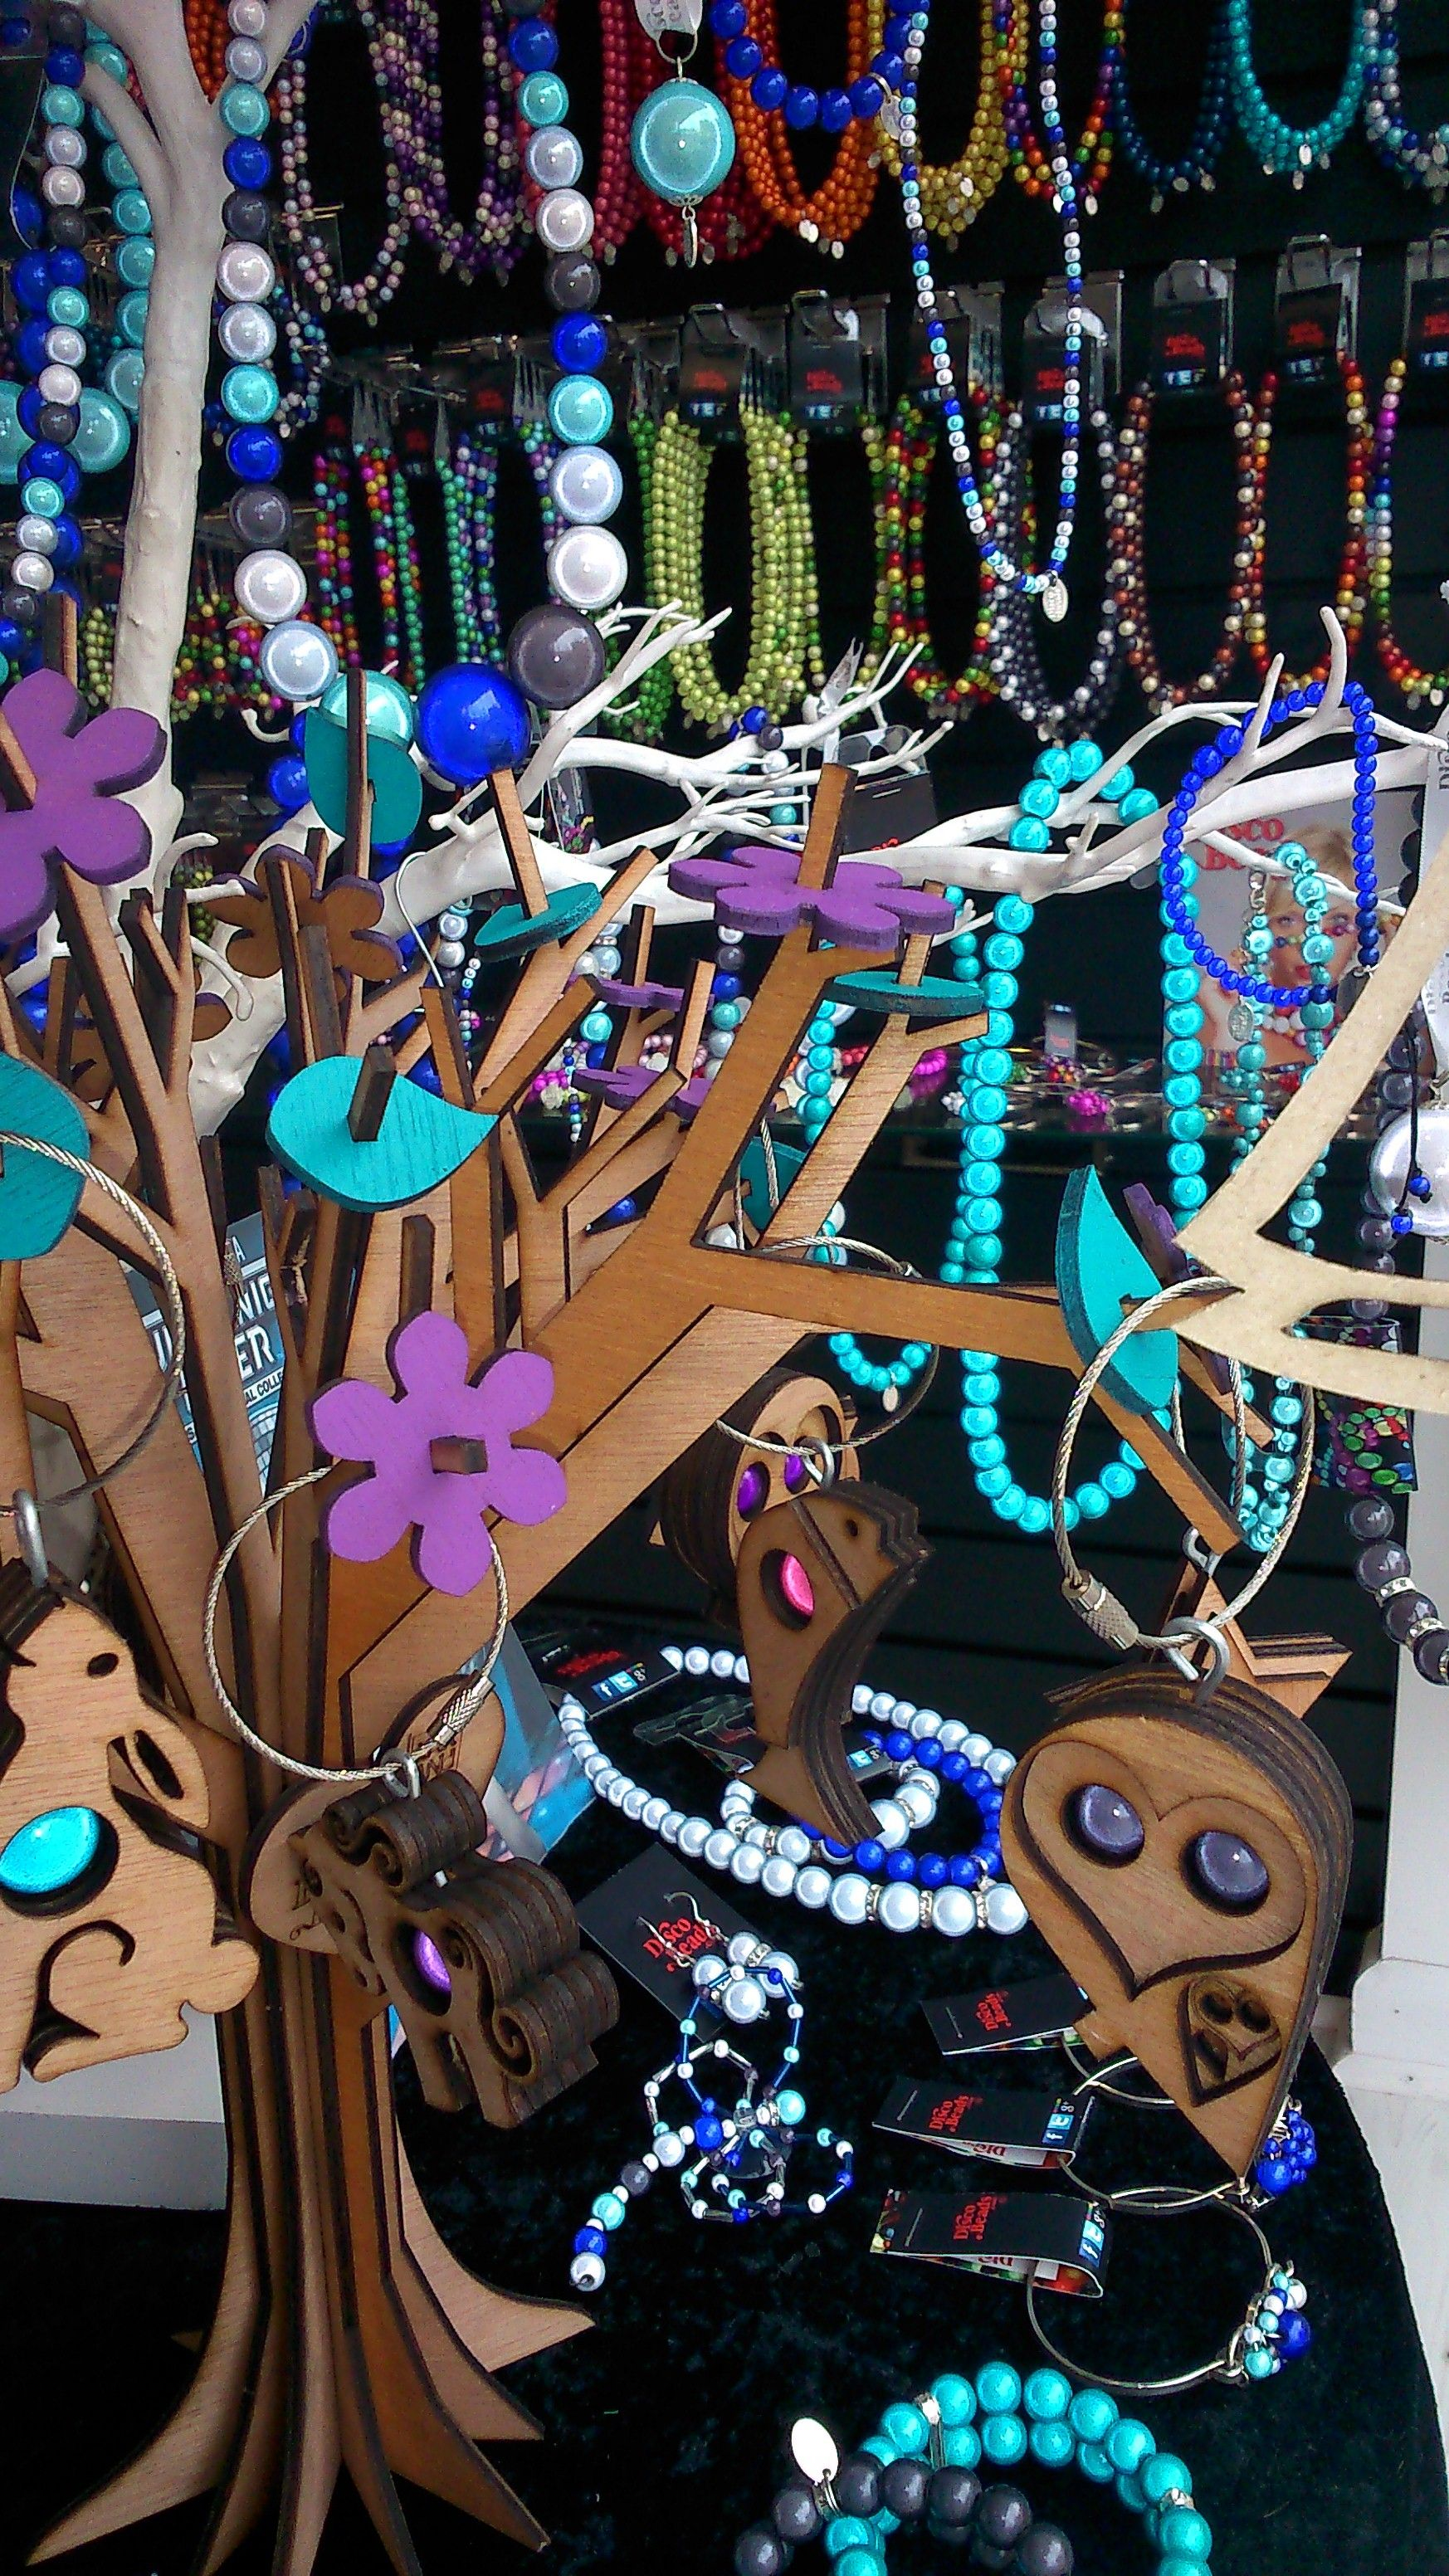 Magic glowing jewellery tree. Laser-cut wooden tree with glowing beads. Handcrafted owl keyrings, kids bedroom decor and much more at discobeads.com